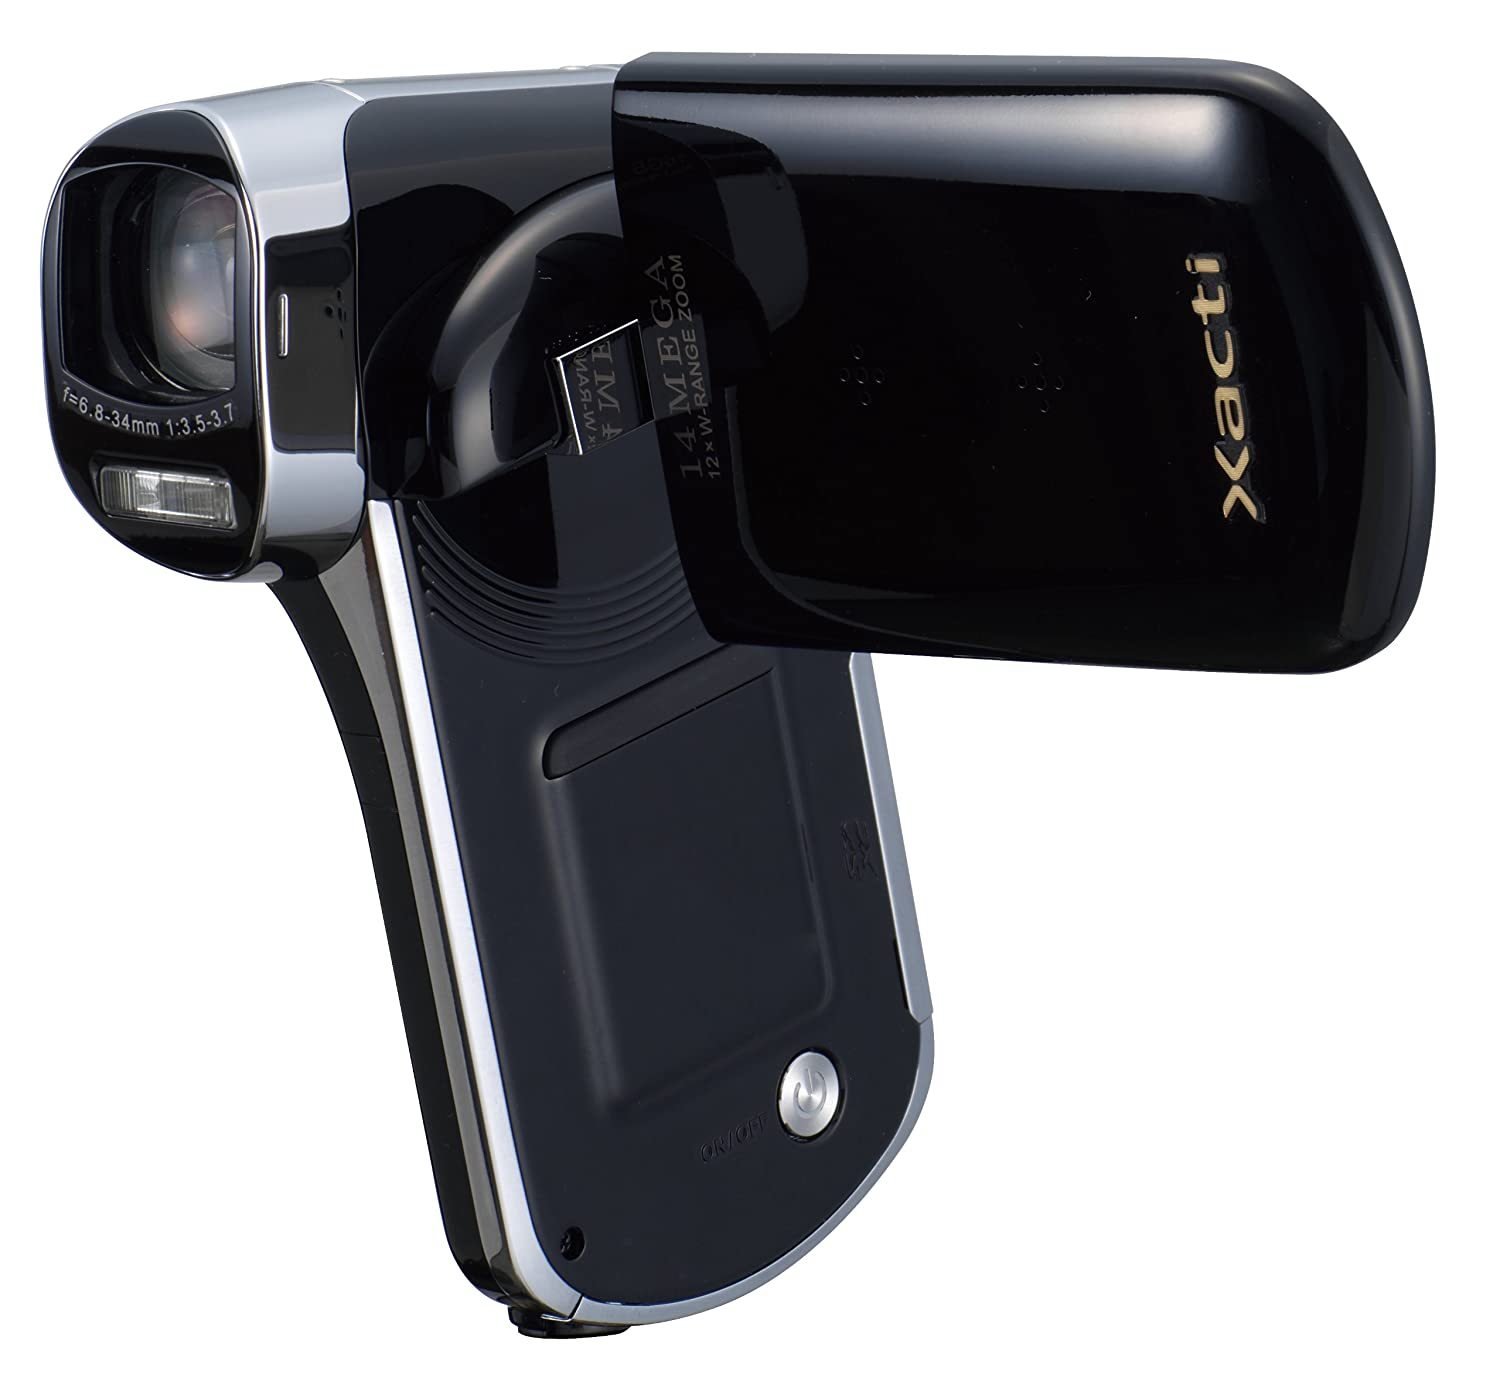 Amazon.com : Sanyo VPC-CG102 High Definition Camcorder and 14 MP Camera  w/12x Optical Zoom (Discontinued by Manufacturer) : Camera & Photo